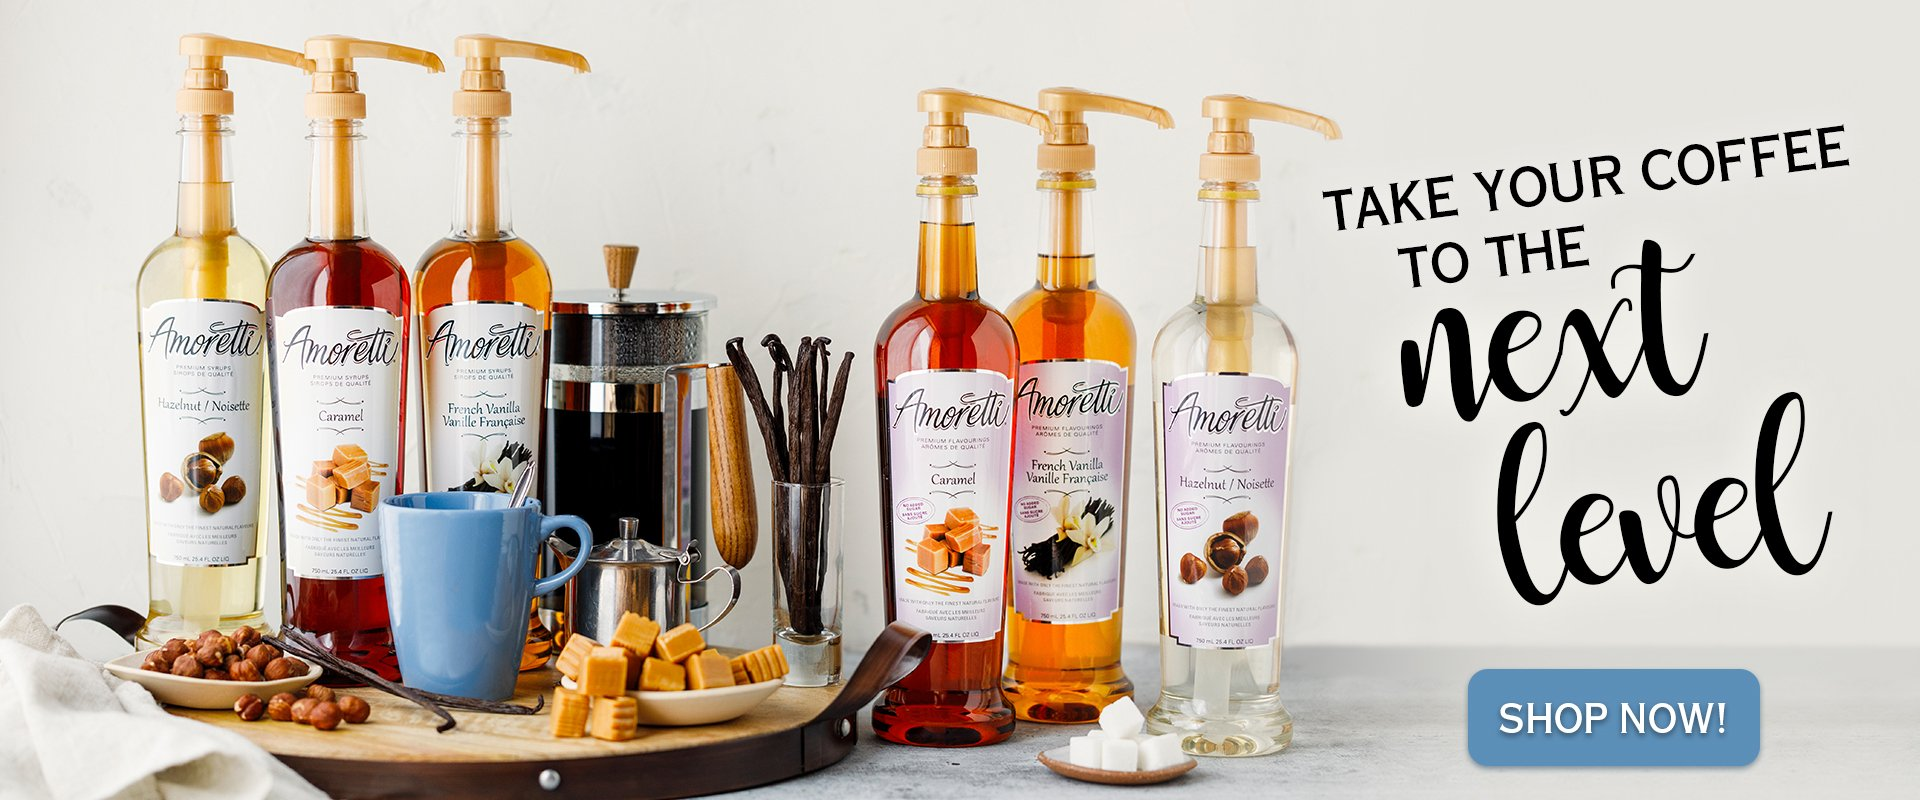 Take your coffee to the next level with Amoretti Premium Syrups & Sugar Free Flavorings